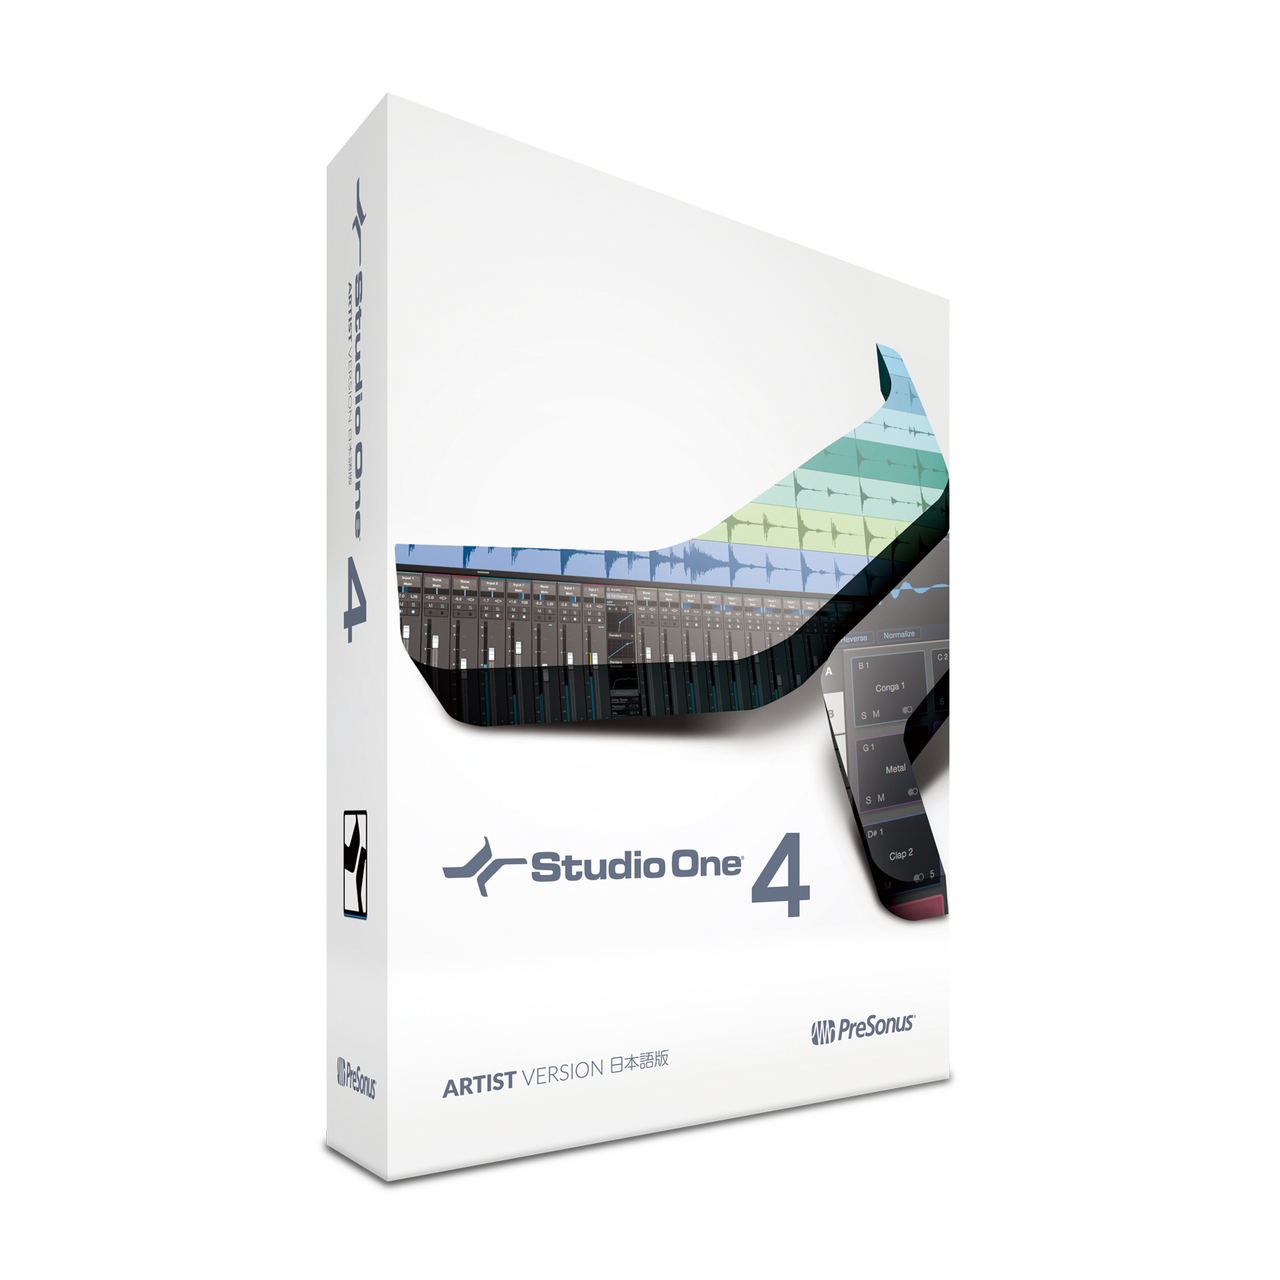 PreSonus Studio One 4 Artist Japanese version (box) [long-awaited major version up!]